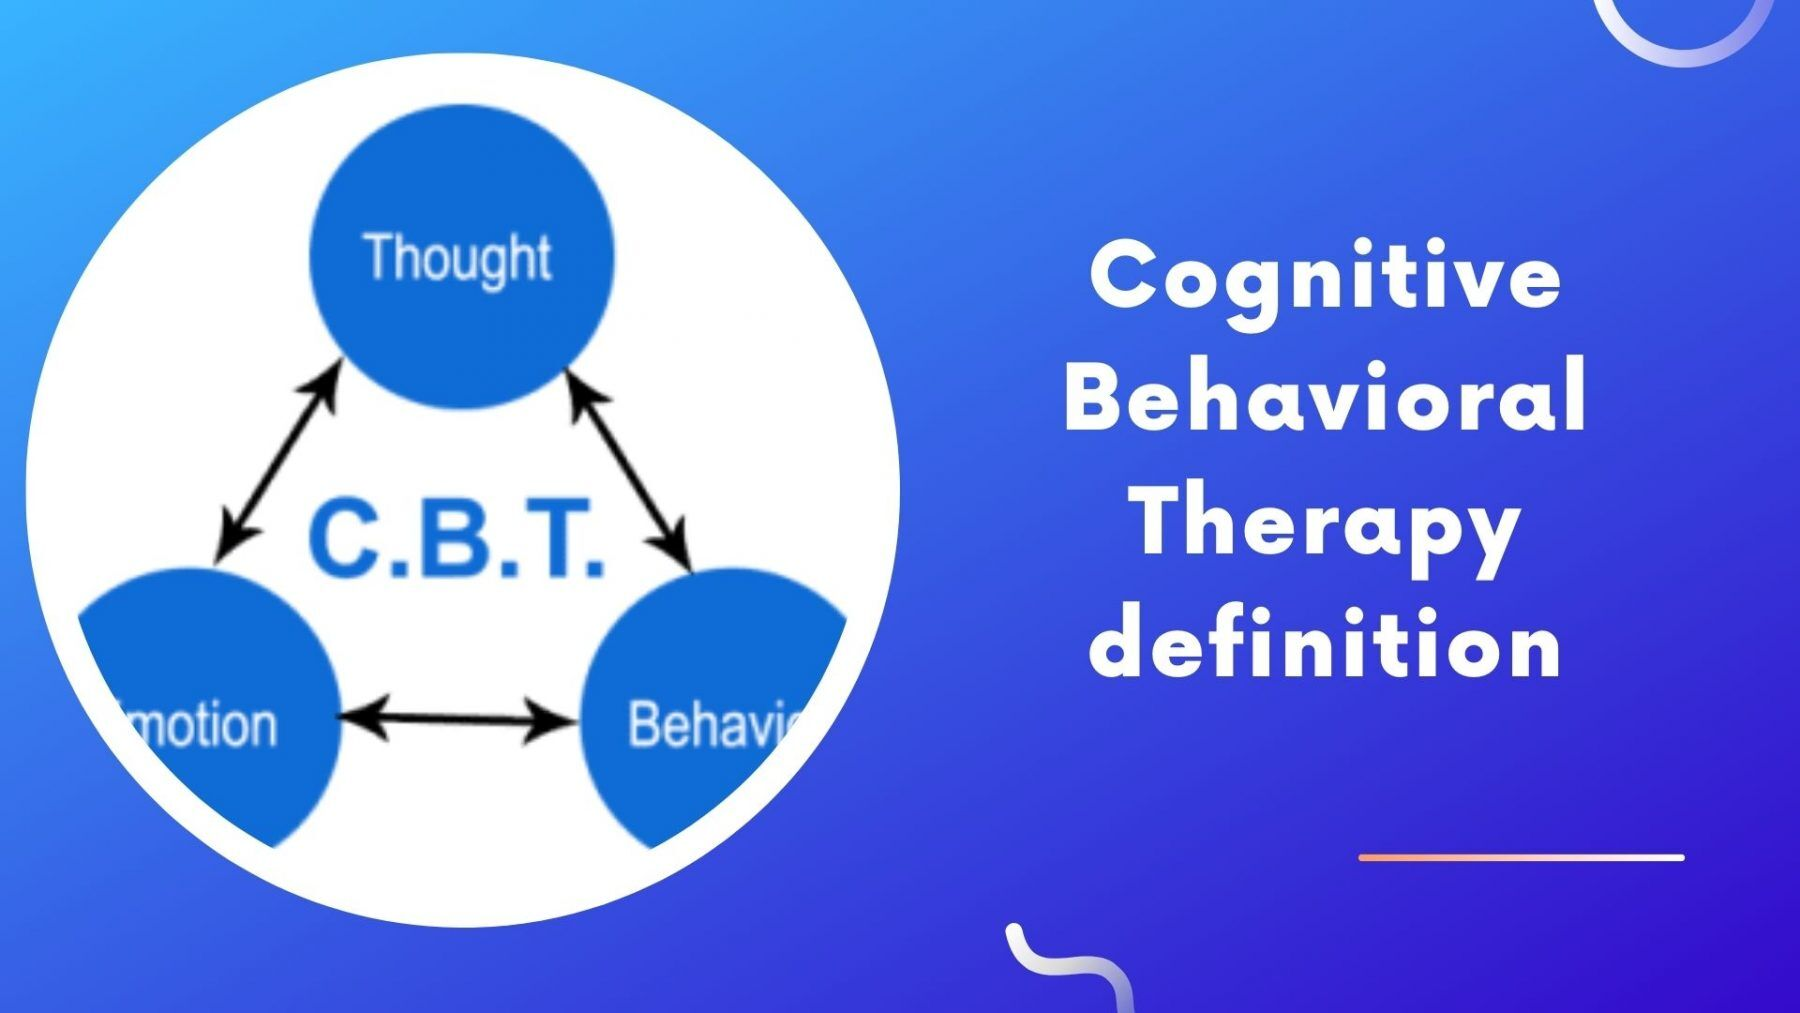 cognitive behavioral therapy definition